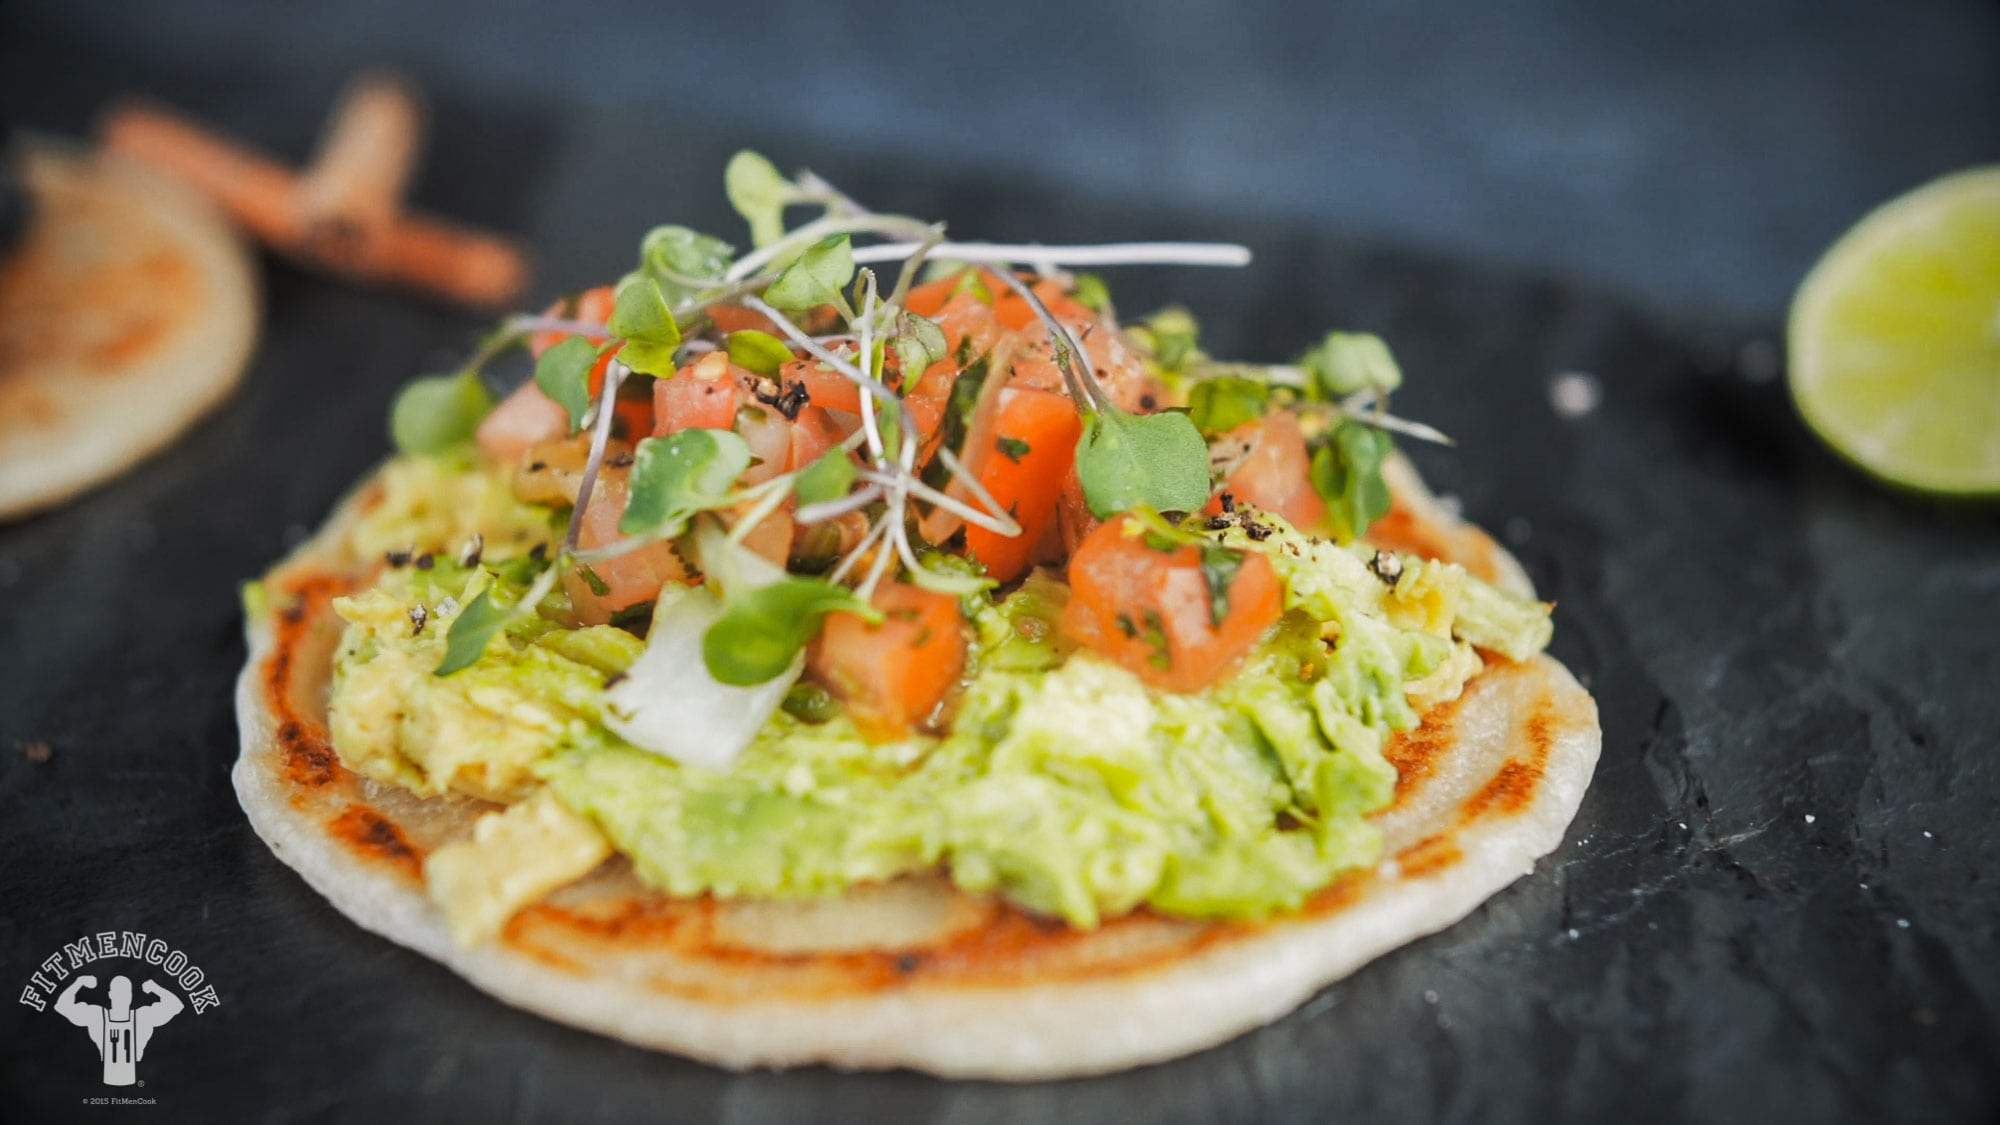 keto-friendly flatbread